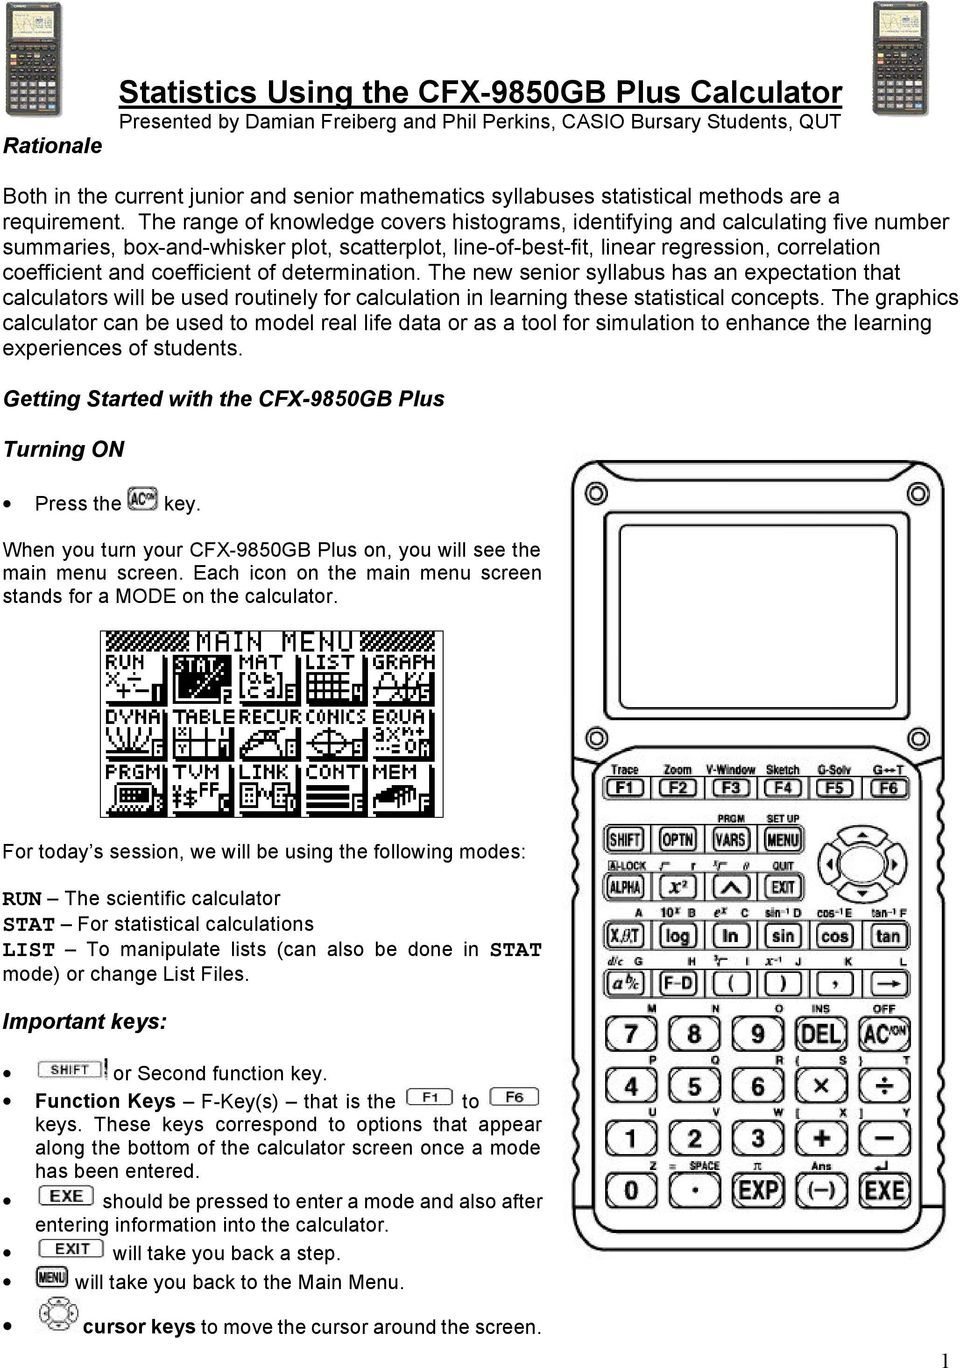 Statistics Using the CFX-9850GB Plus Calculator Presented by Damian